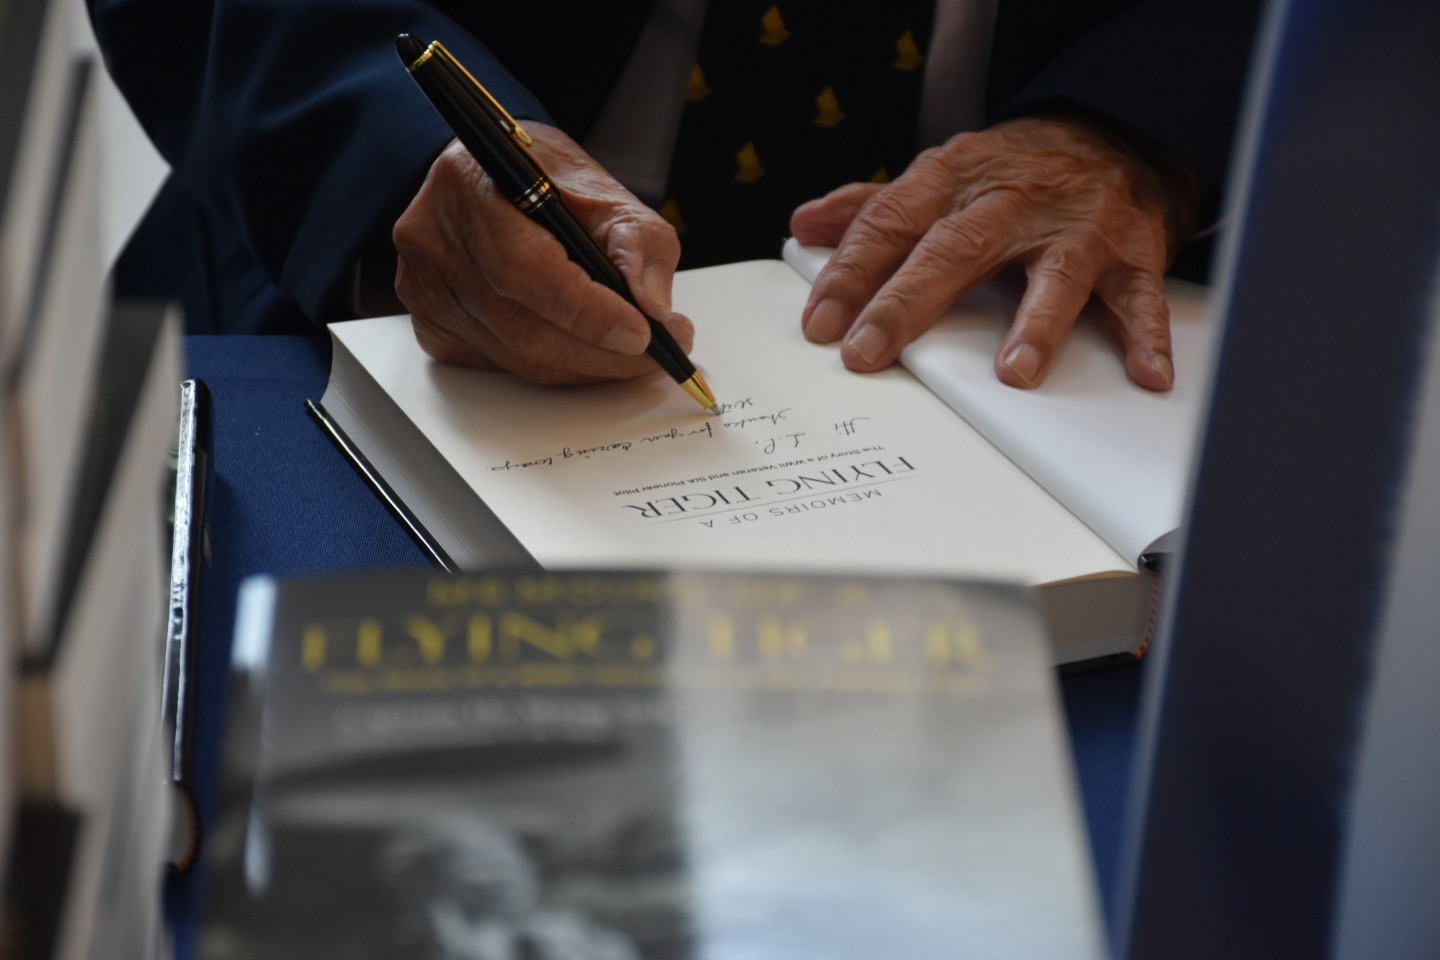 Ho at his book signing event. (World Scientific)